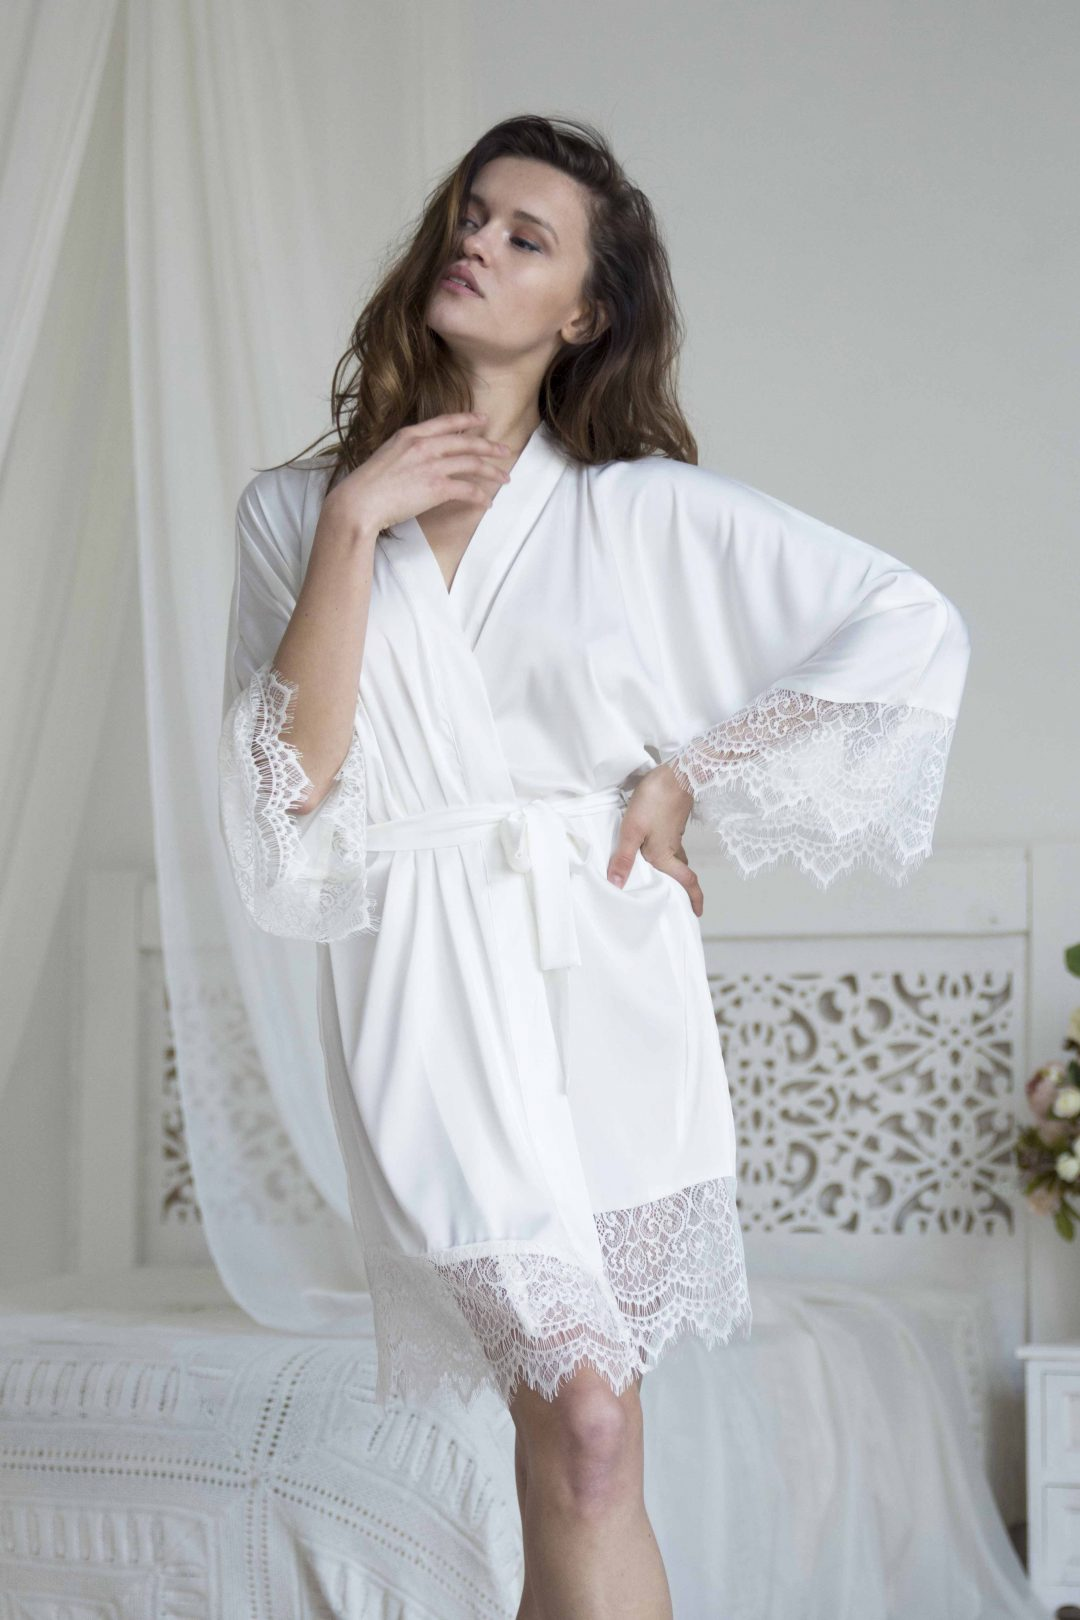 Picture of a white bridal satin silk dressing gown with lace | Bridesmaids robe for wedding party | IDentity Lingerie UK